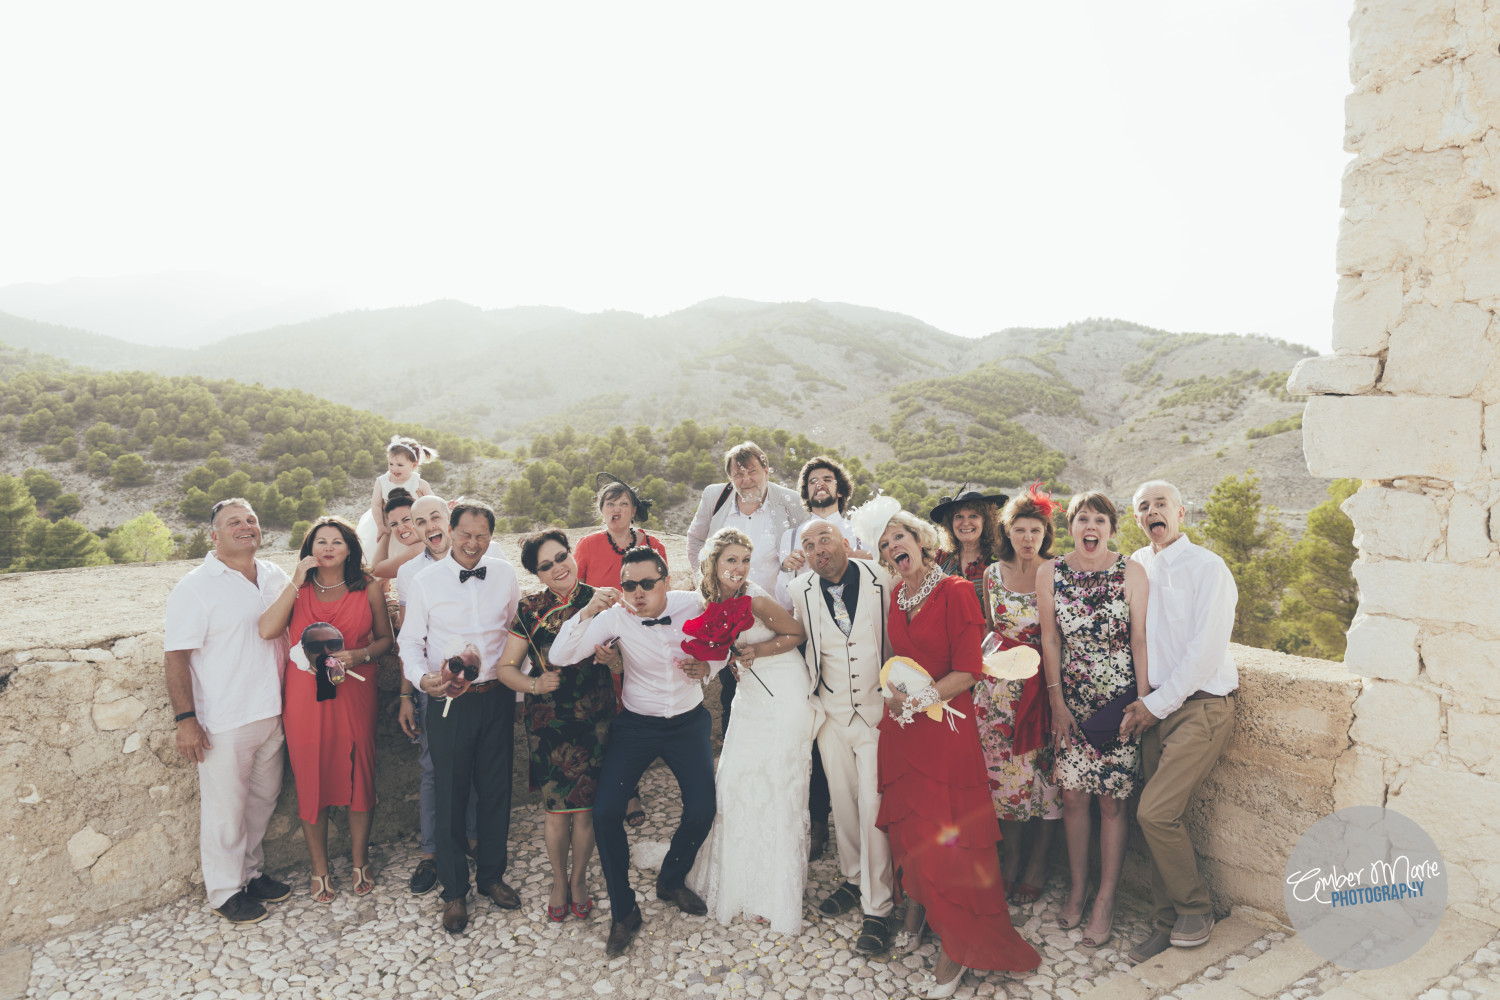 Quirky wedding photographer leeds shoots international wedding in spain